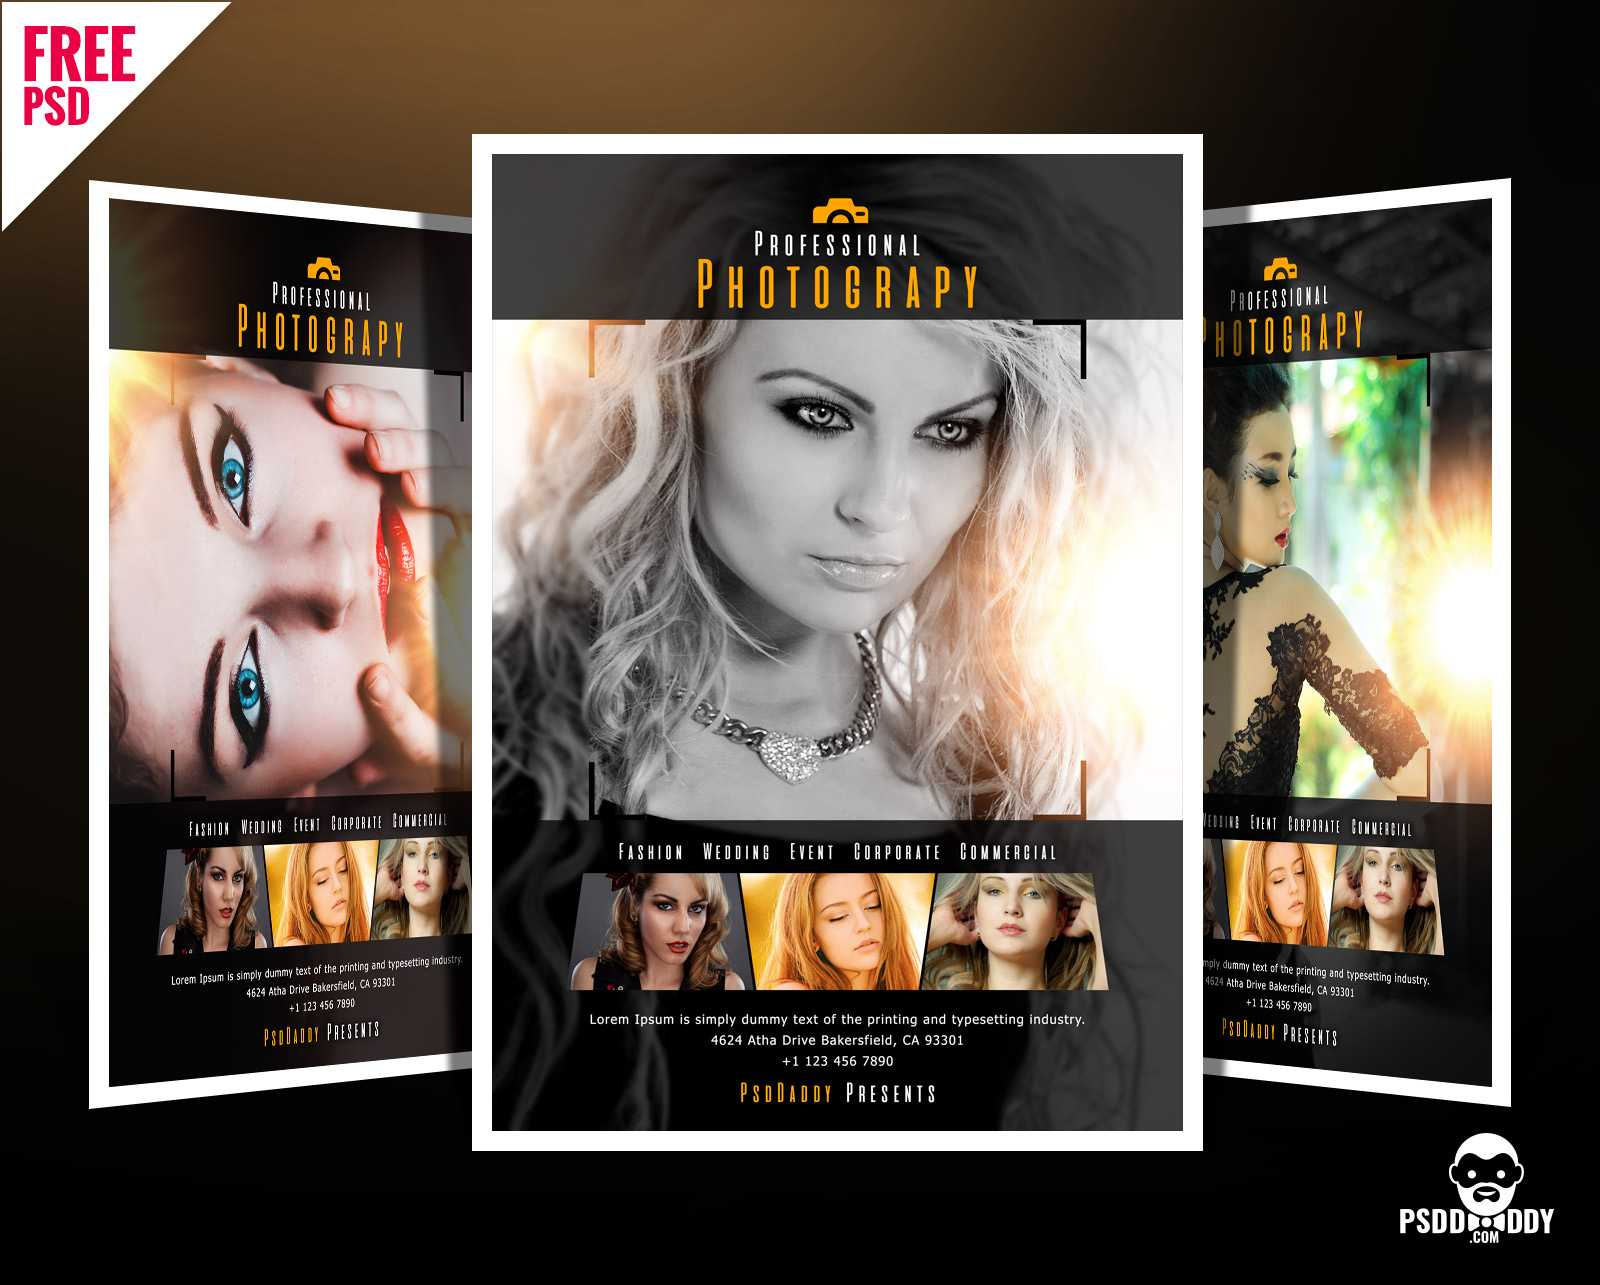 Download]Professional Photography Flyer Psd | Psddaddy Intended For Free Photography Flyer Templates Psd